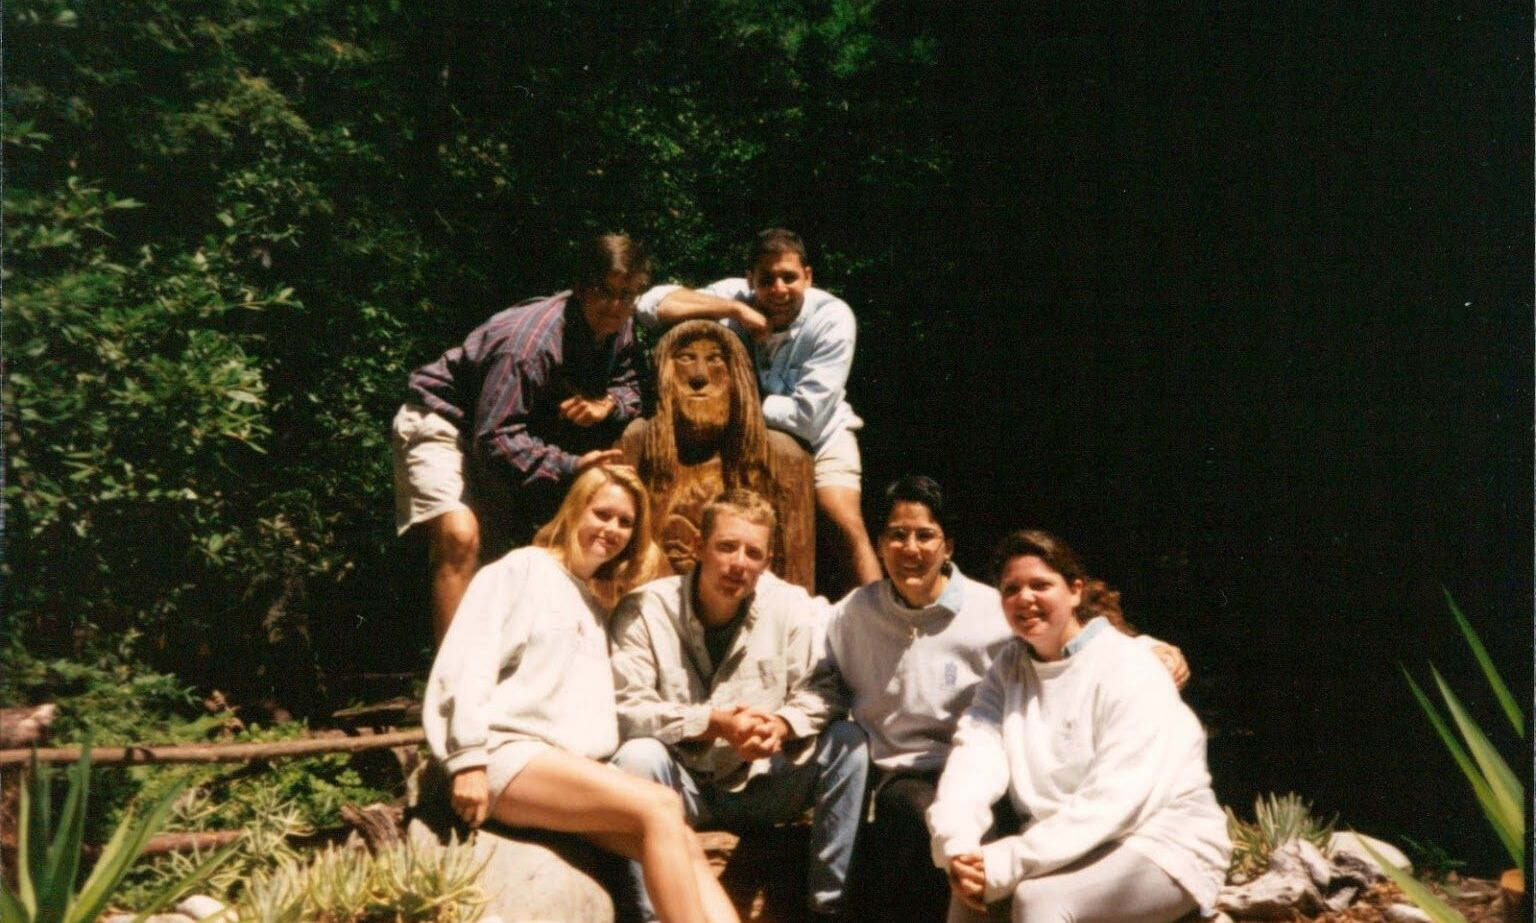 Submitted by JVC Visalia '93-'94: John Callahan, Liz Hanifin, Maria Laberteaux, Chris Petrone, Kristi Richter, and Harry Rissetto